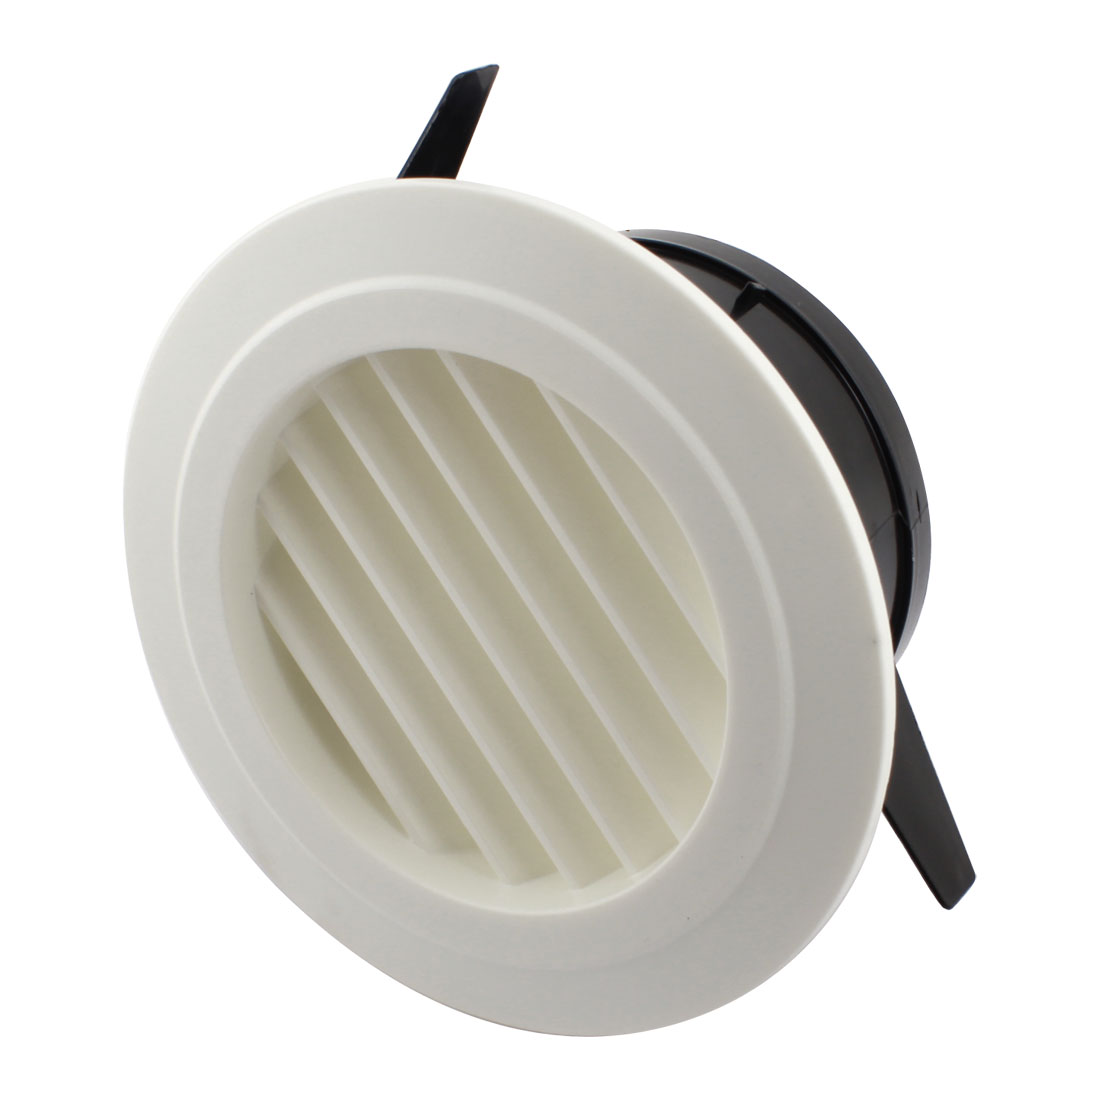 125mm Mounting Dia Circle Air Vent Grille Outlet Louver Ventilation Cover Flange w Filter